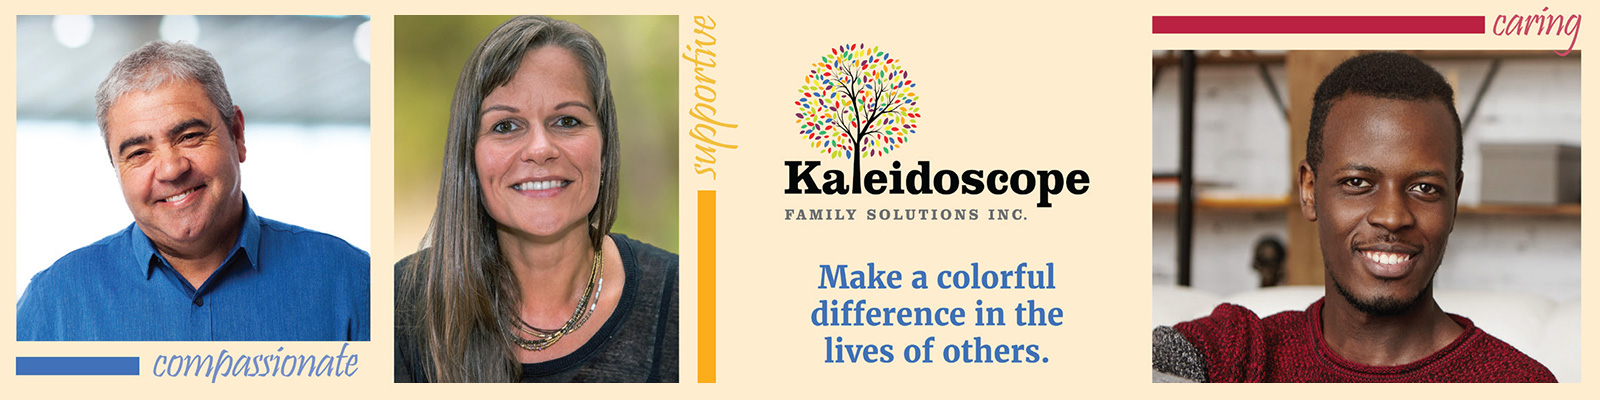 Kaleidoscope Family Solutions Inc - Behavior Support Specialist banner image